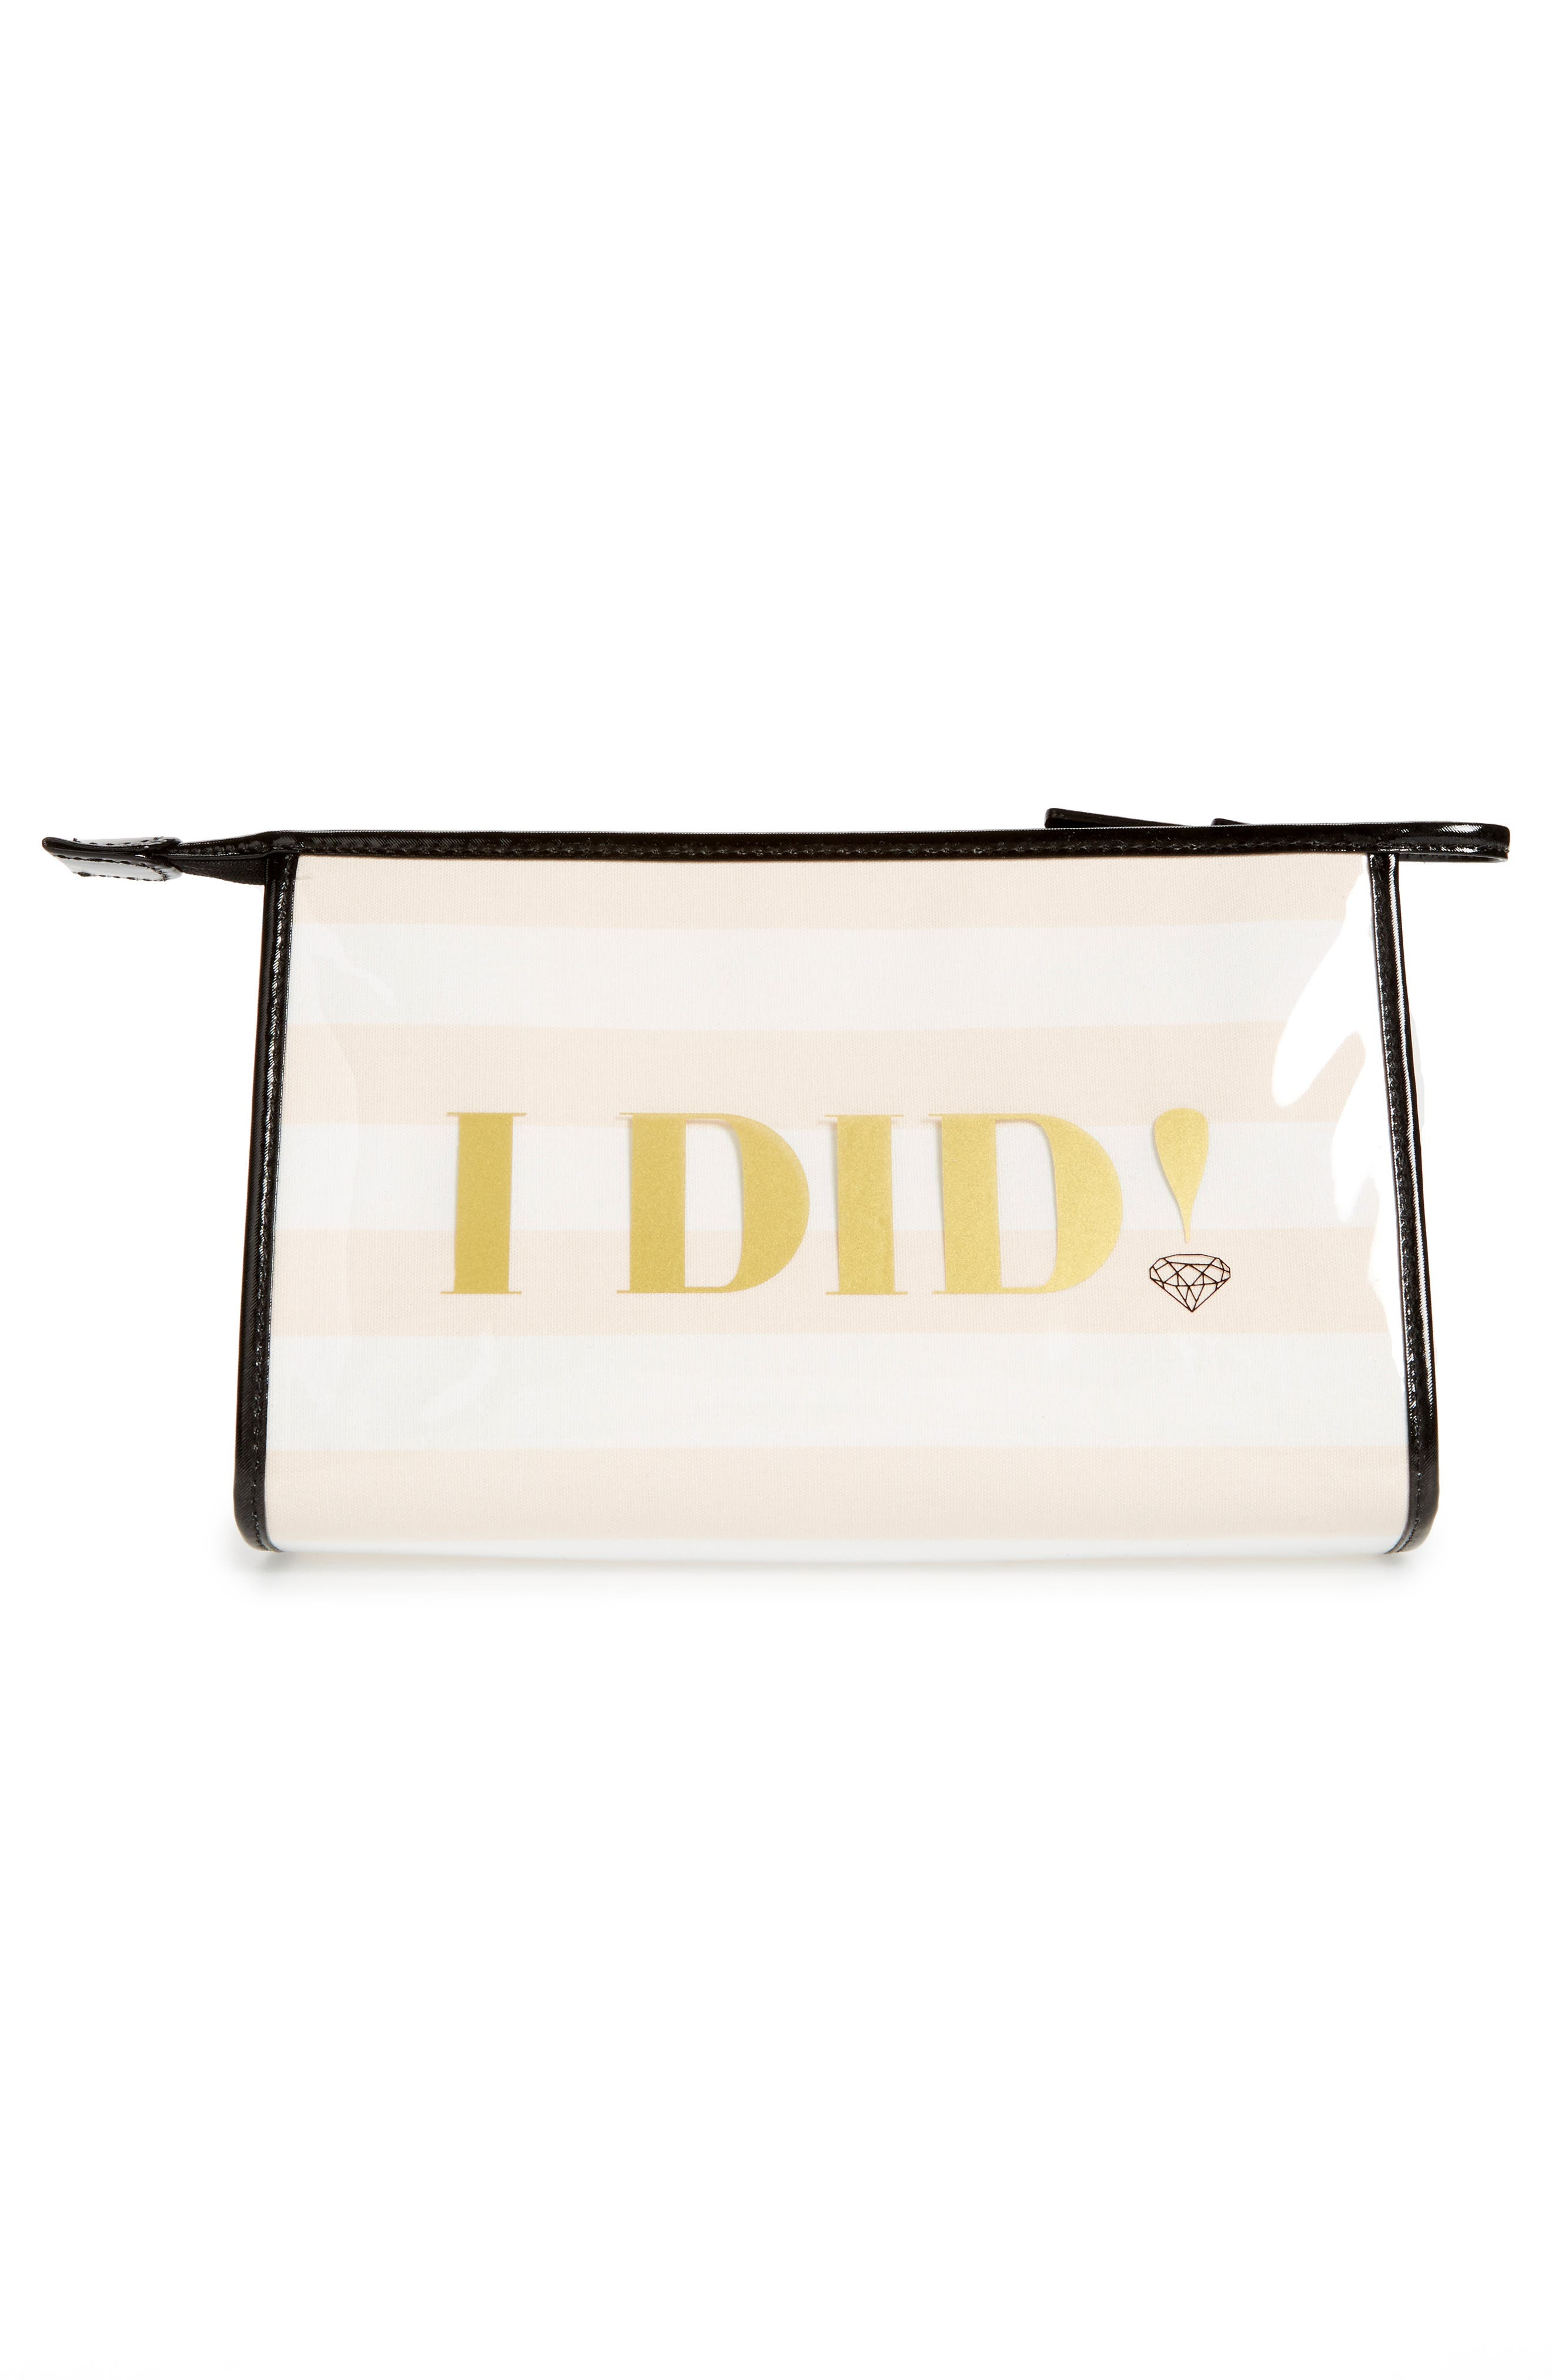 wedding belles - i do/i did pouch,                             Alternate thumbnail 2, color,                             100